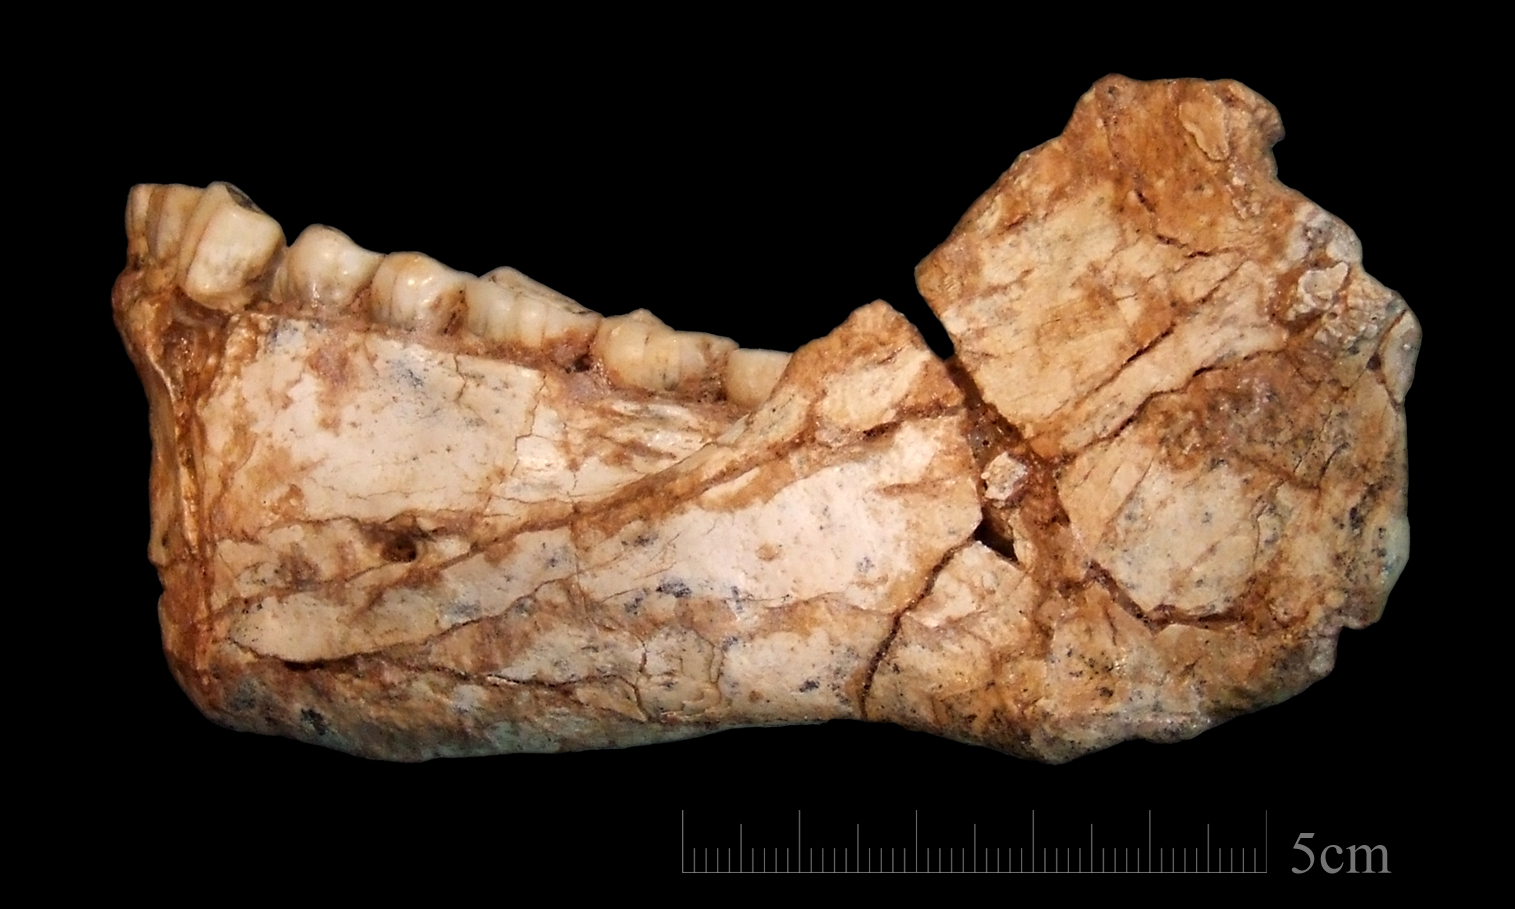 KEY. The mandible Irhoud 11 is the first, almost complete adult mandible discovered at the site of Jebel Irhoud. Photo by Jean-Jacques Hublin, MPI-EVA, Leipzig